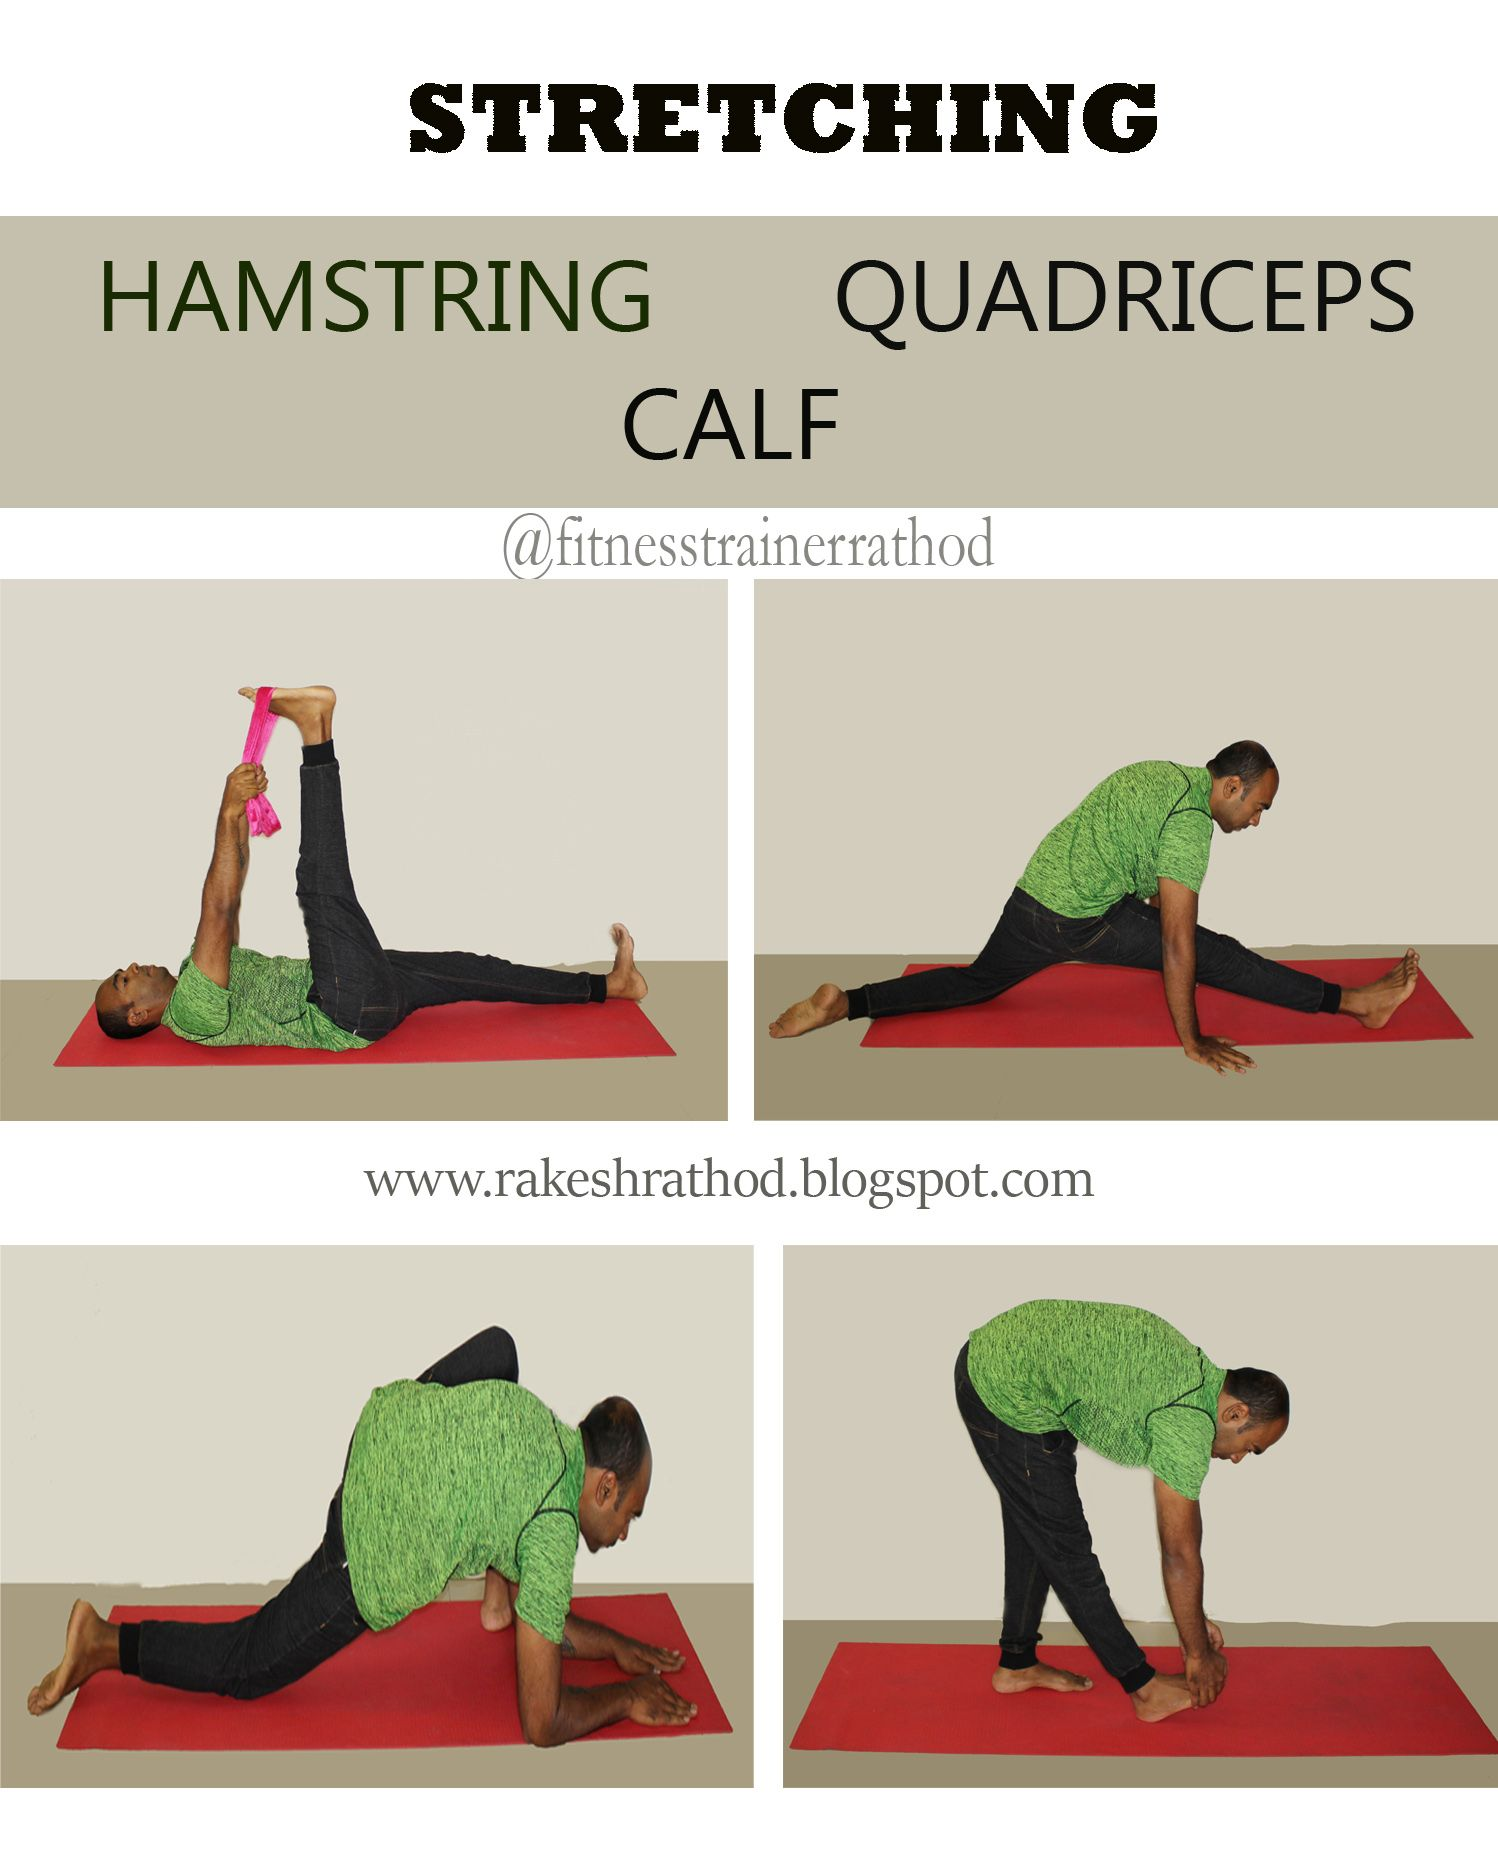 Learn Stretching Exercises For Hamstring Quadriceps And